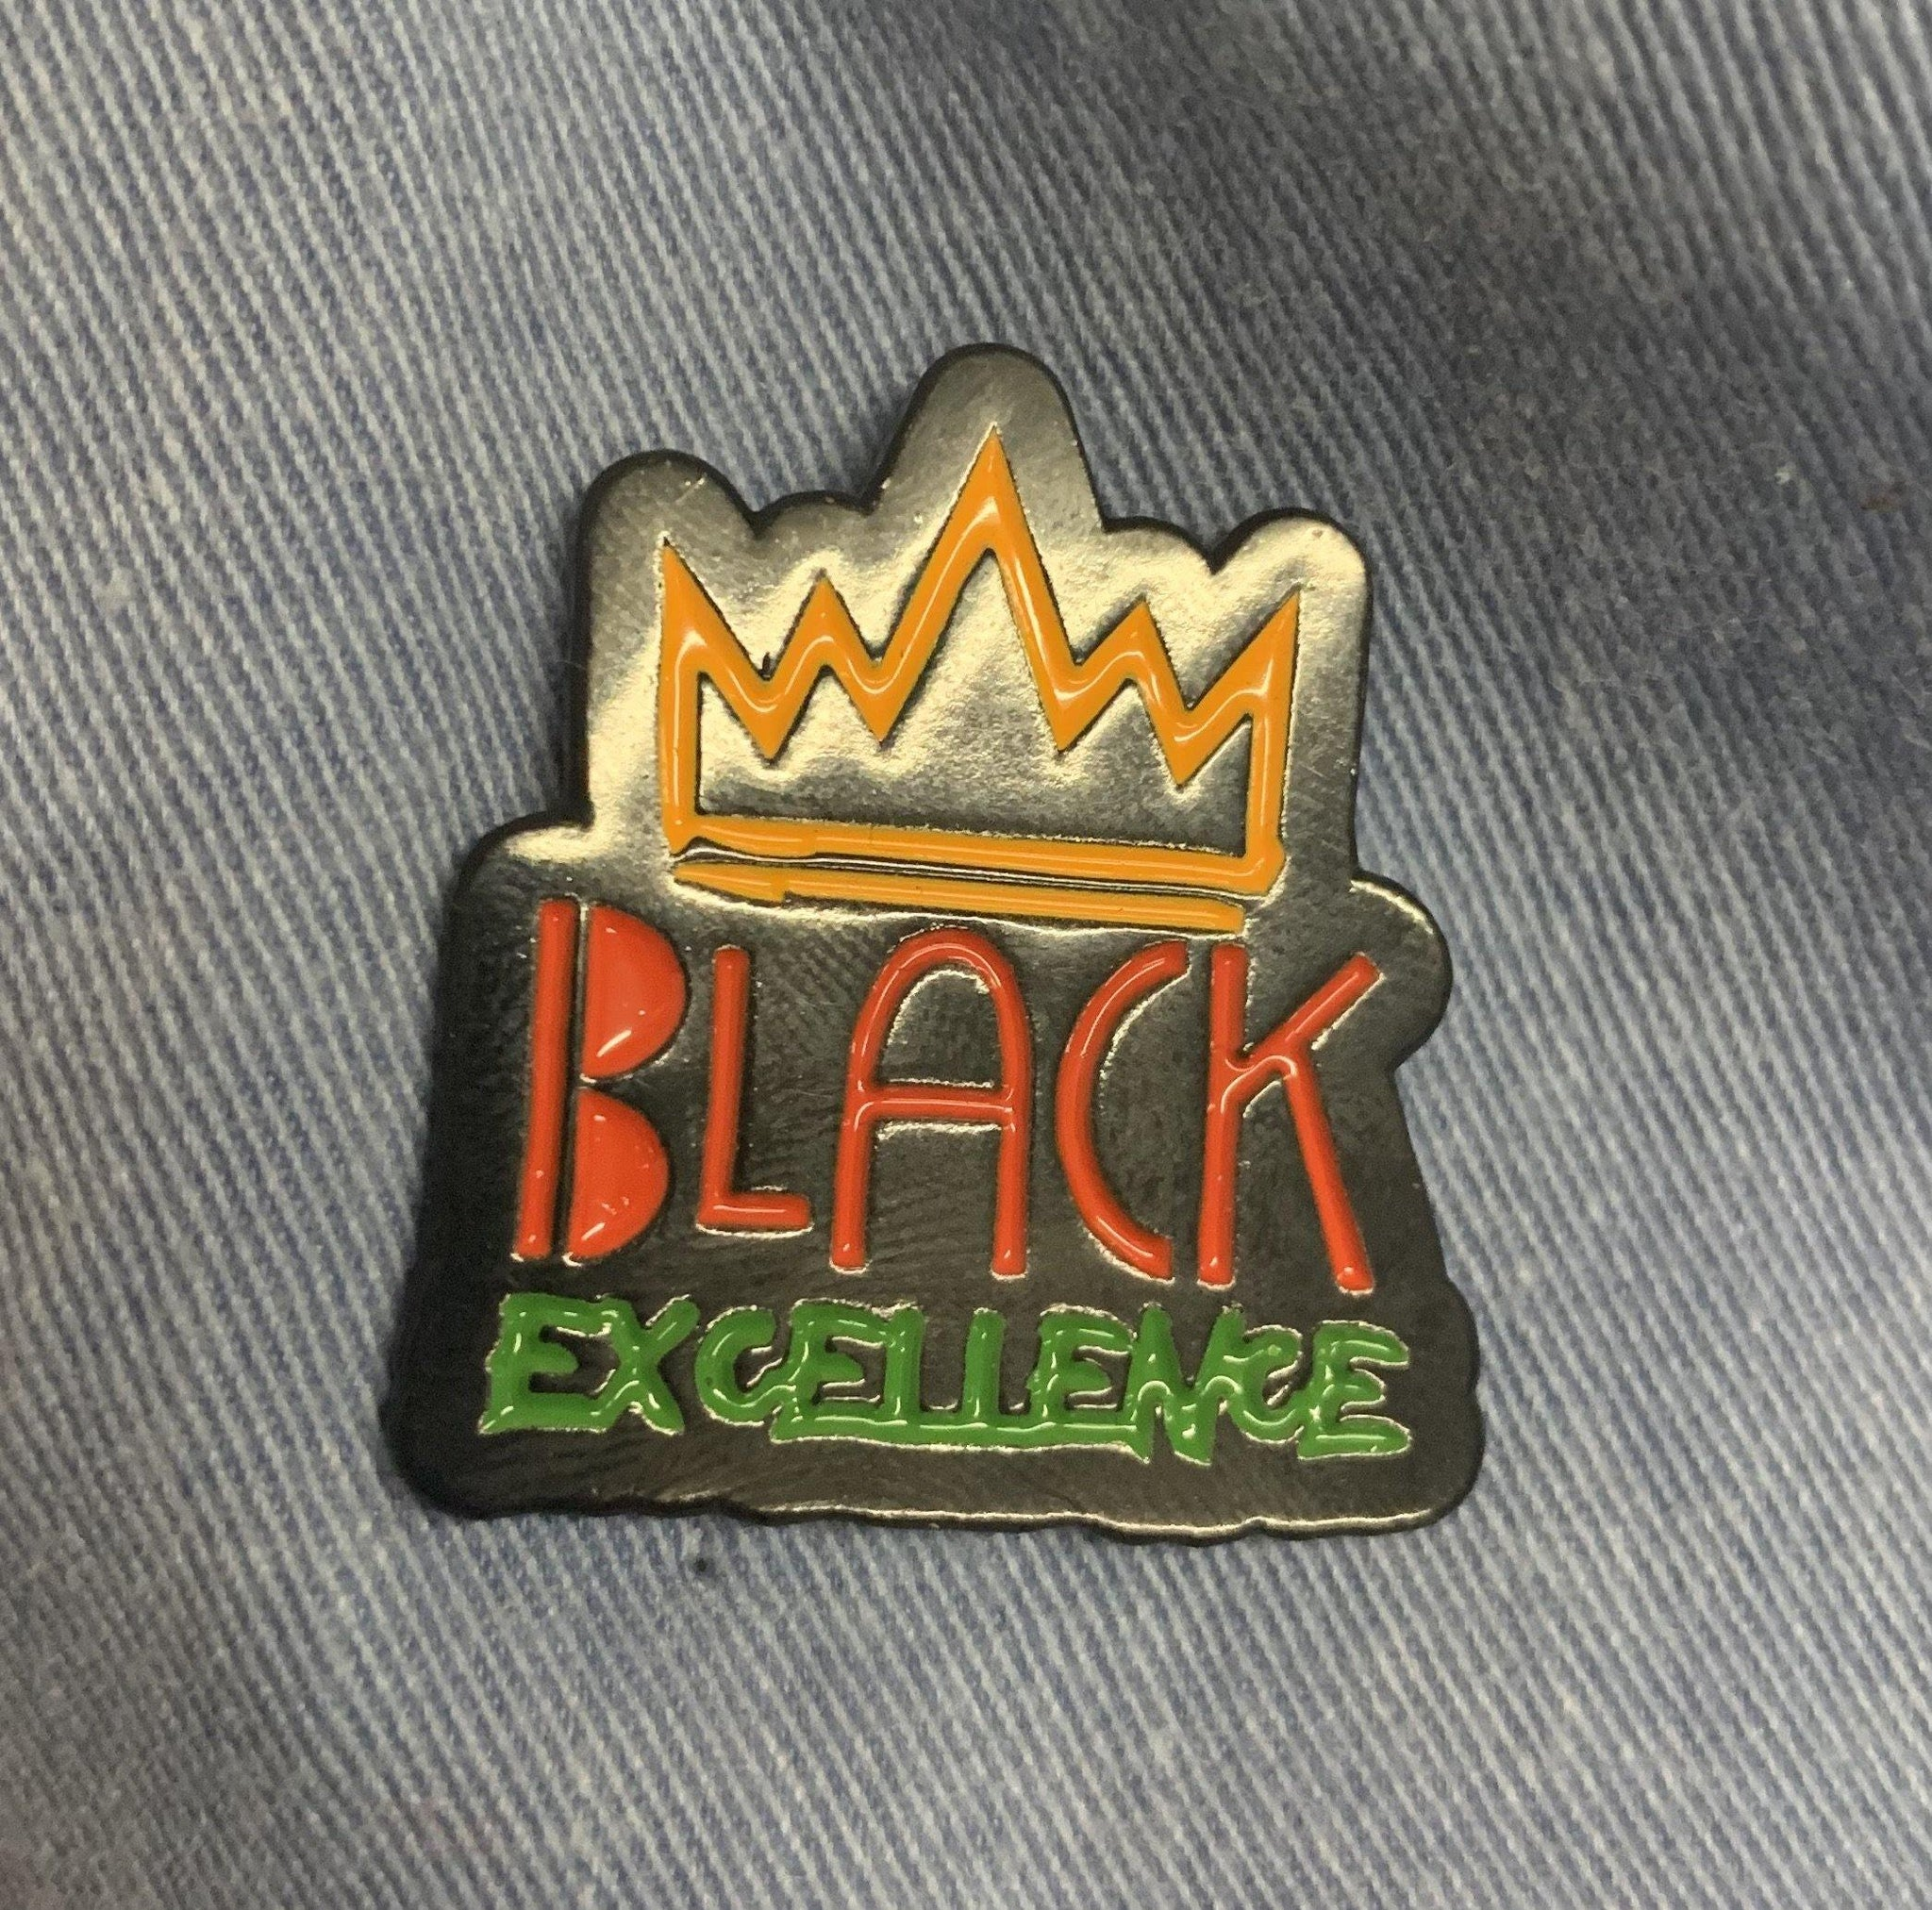 Black excellence lapel pin